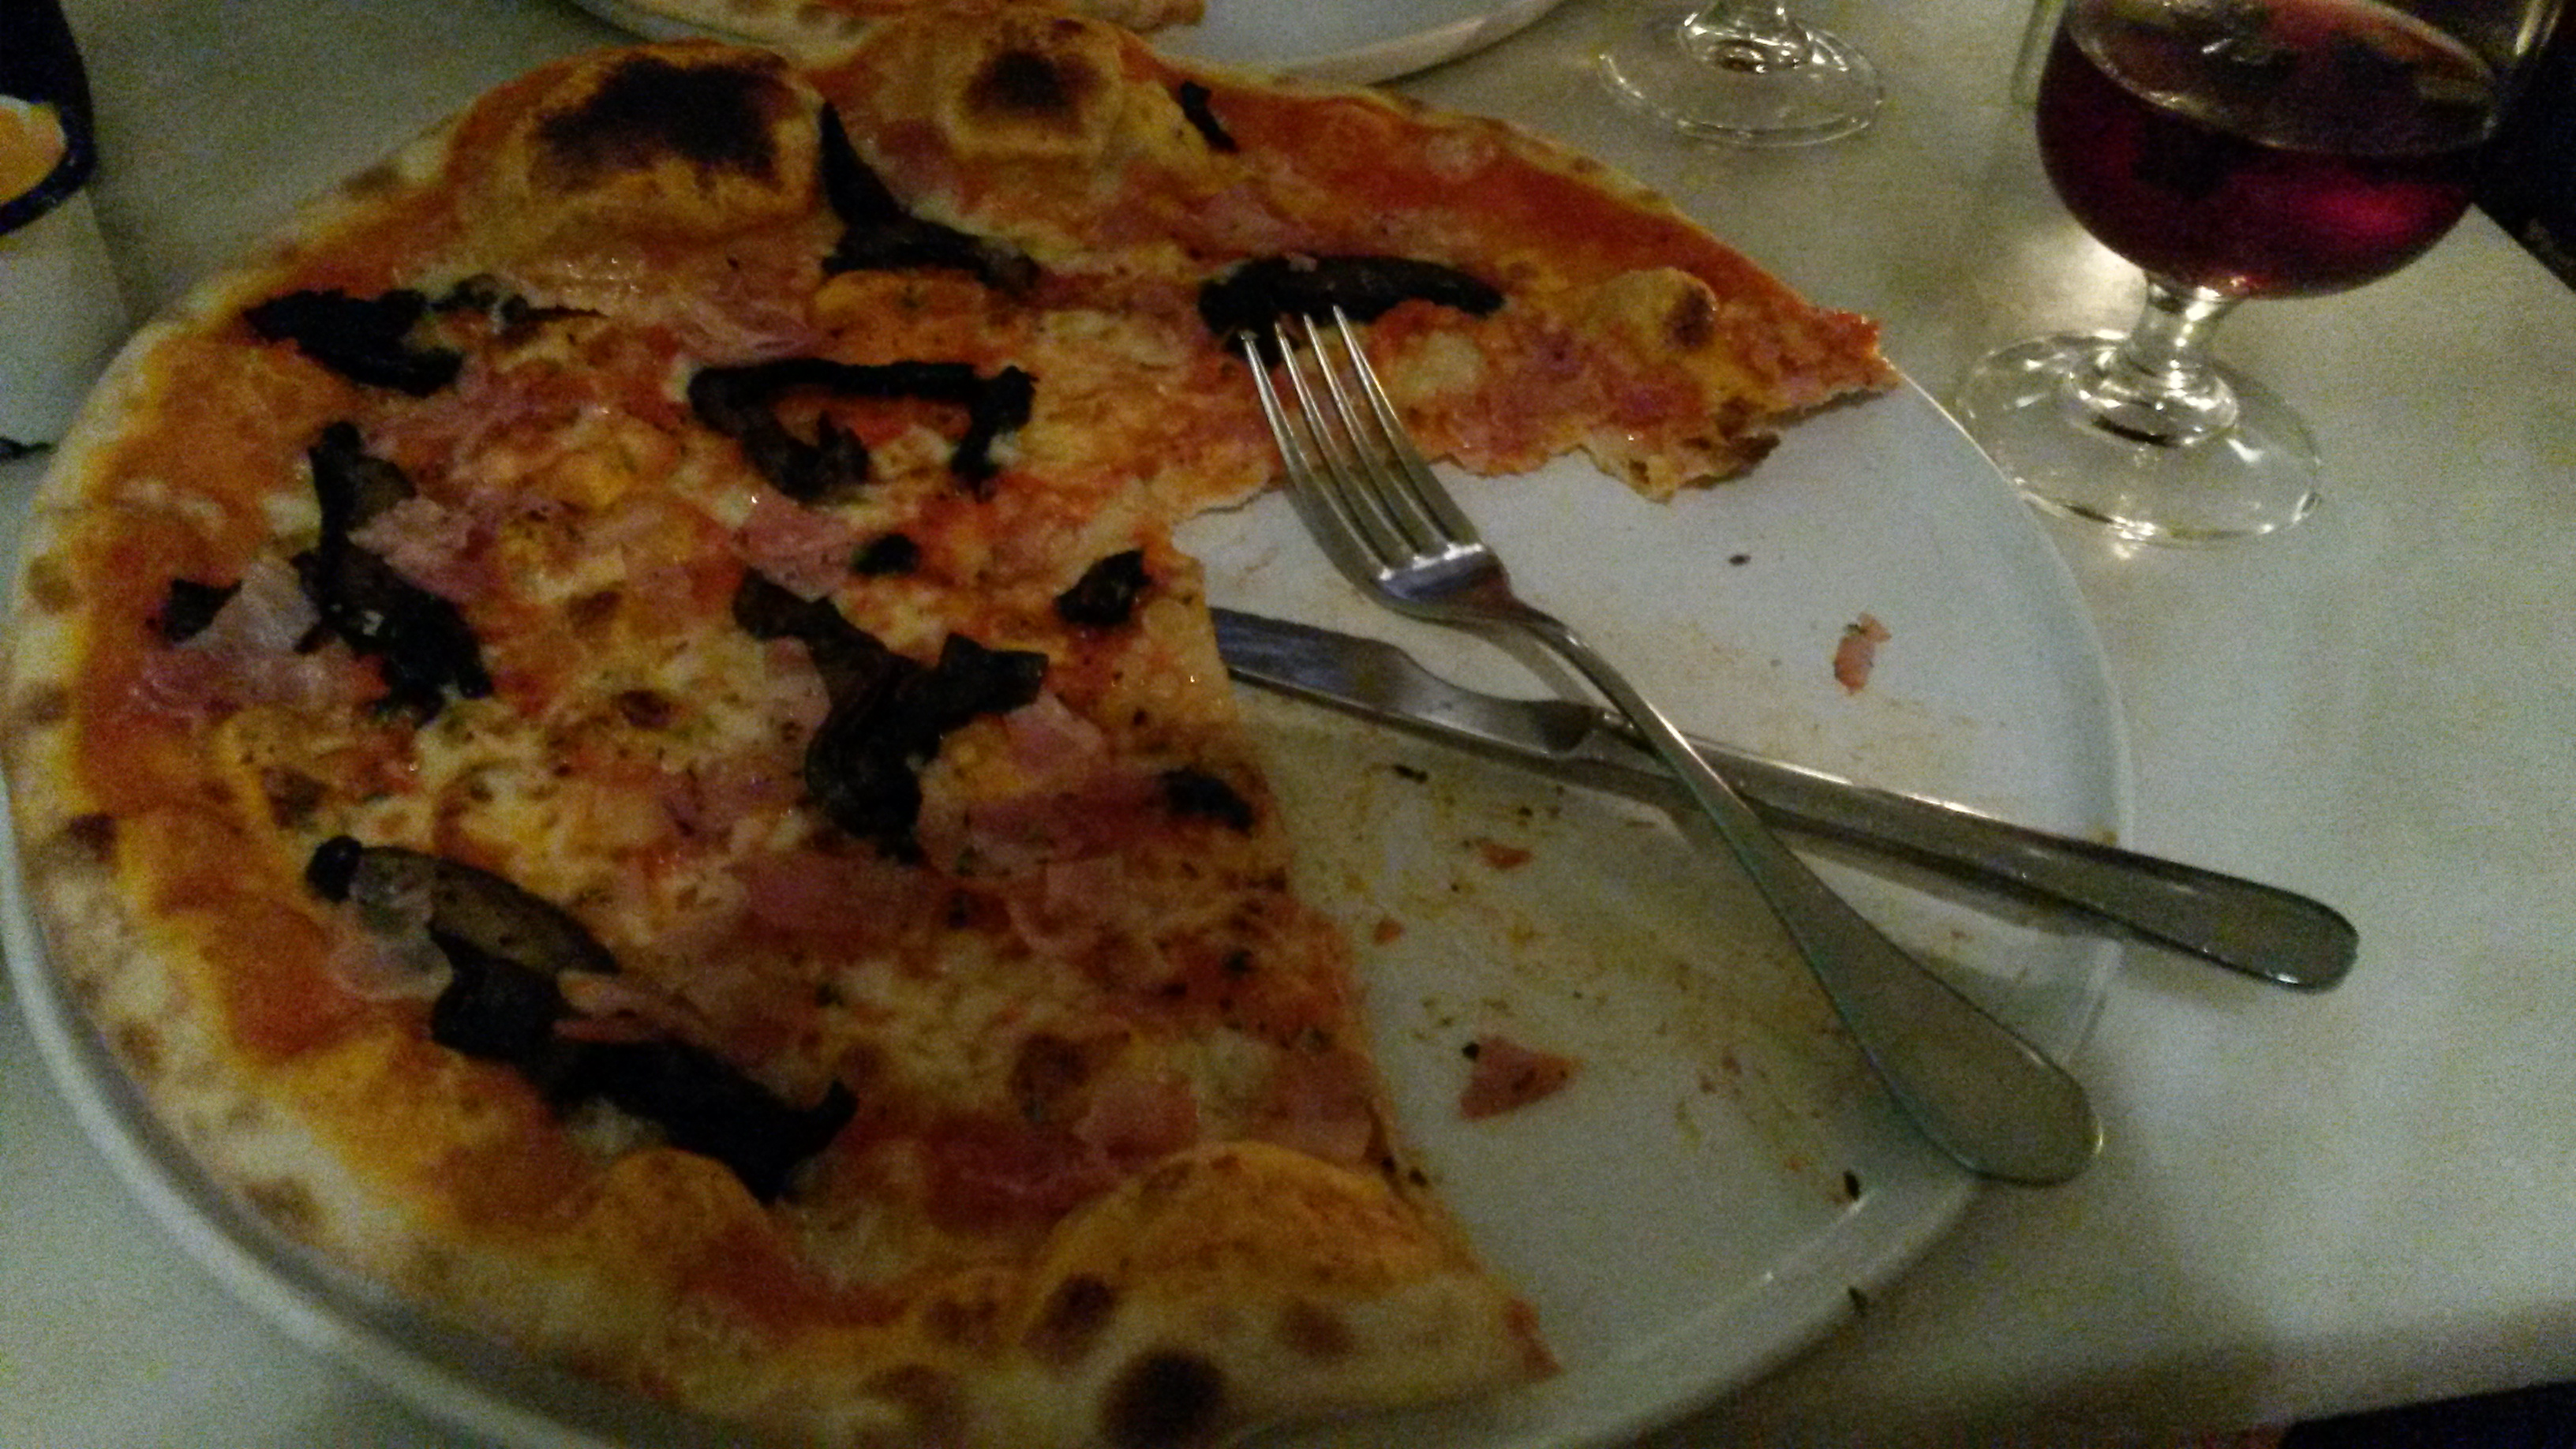 Pizza in Portugal - one of the many Italian eateries in the city of Lisbon